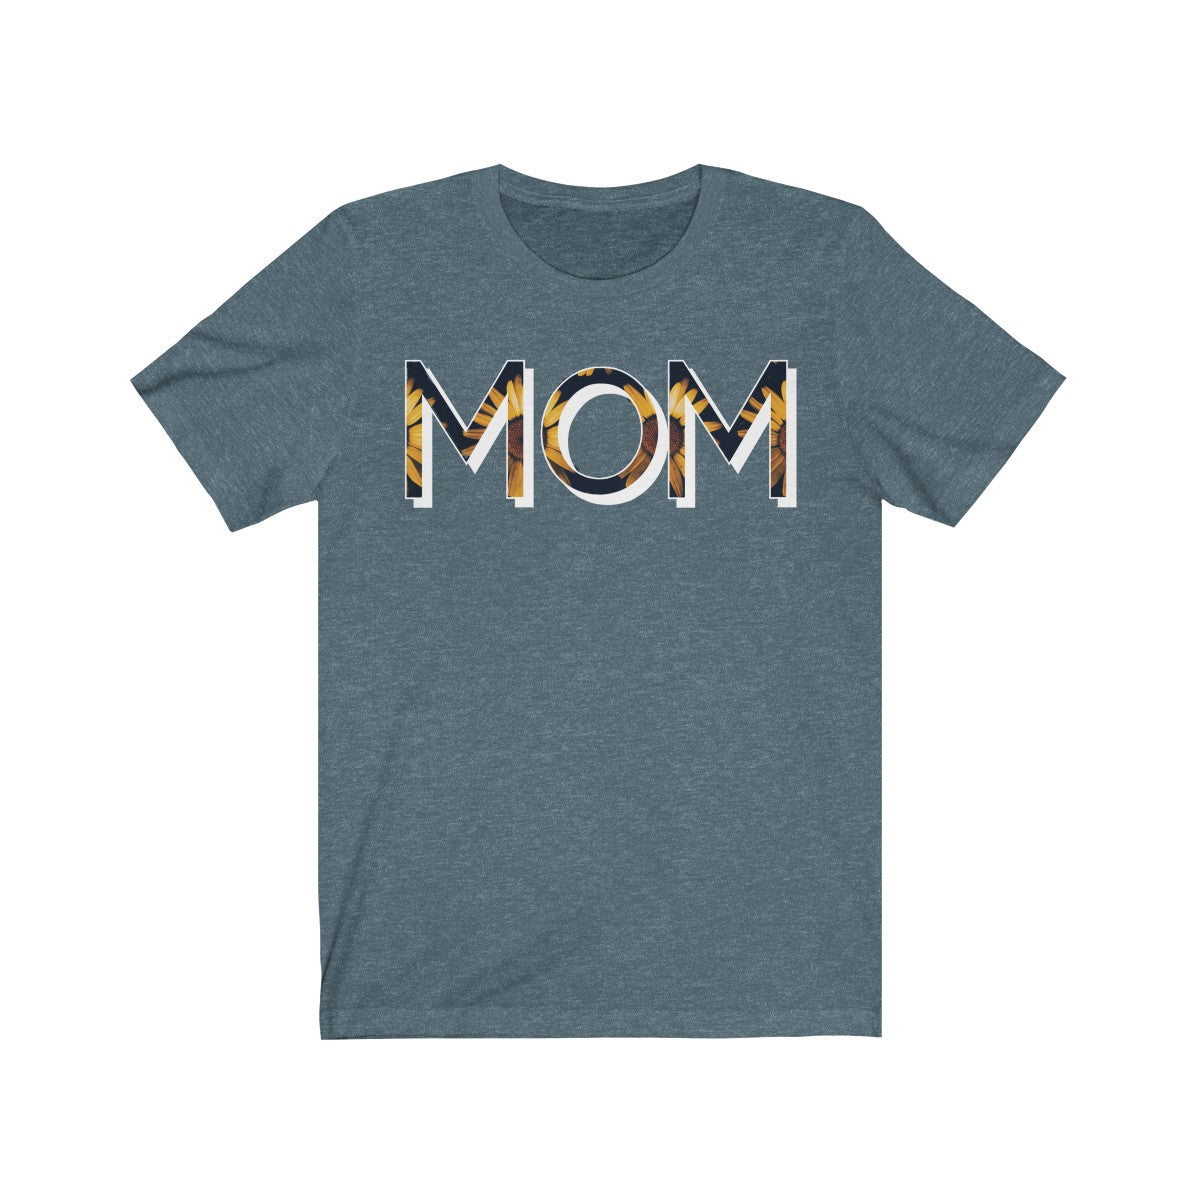 (Sun MOM) Unisex Jersey Short Sleeve Tee - lol - LOL, I Need that! LLC